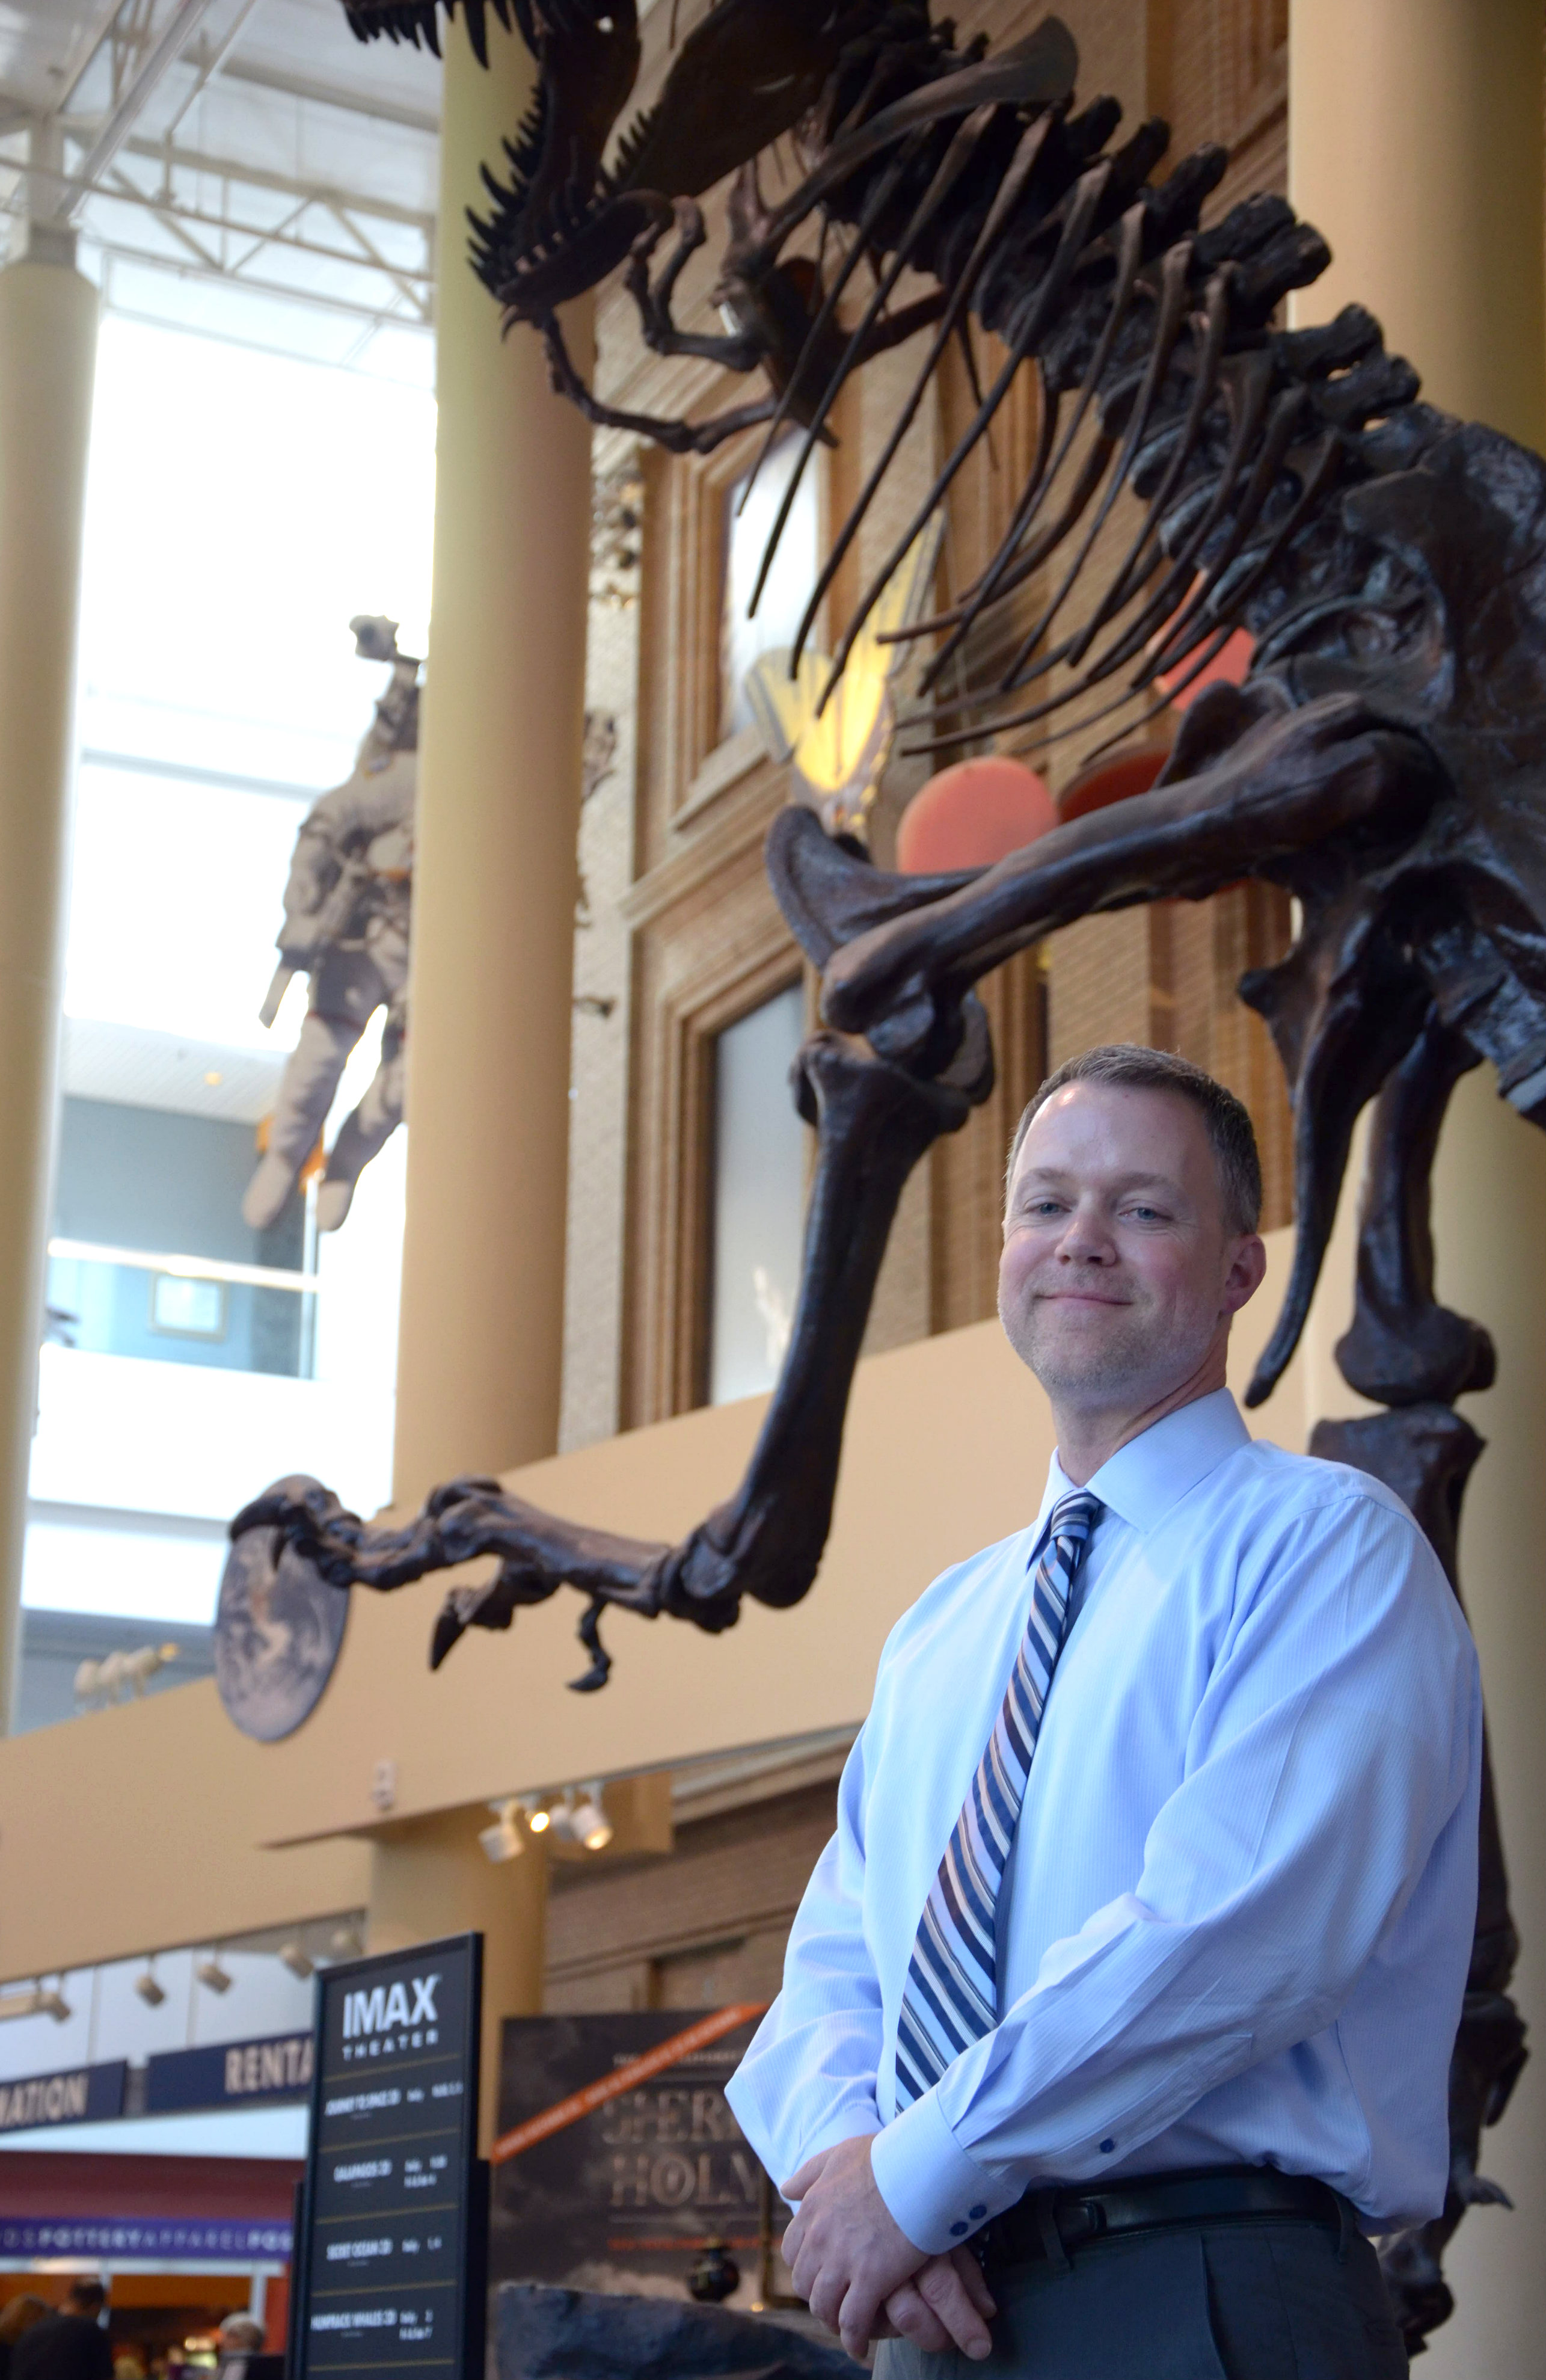 Photo: Ed Scholz of SCFD organization Denver Museum of Nature and Science